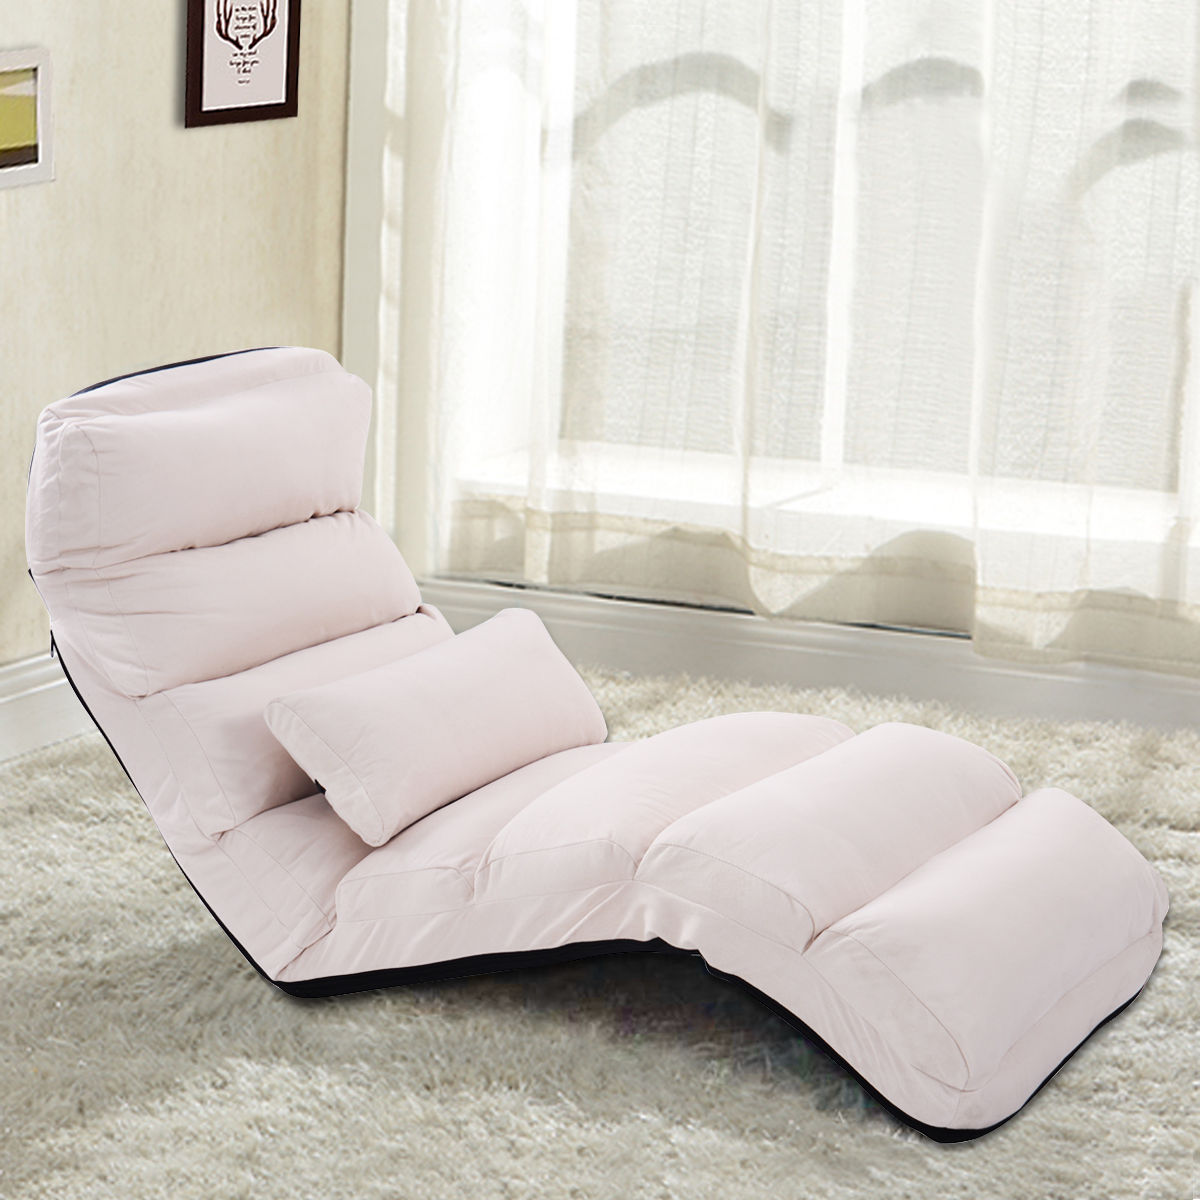 Costway Beige Folding Lazy Sofa Chair Stylish Sofa Couch Beds Lounge Chair  W/Pillow Image